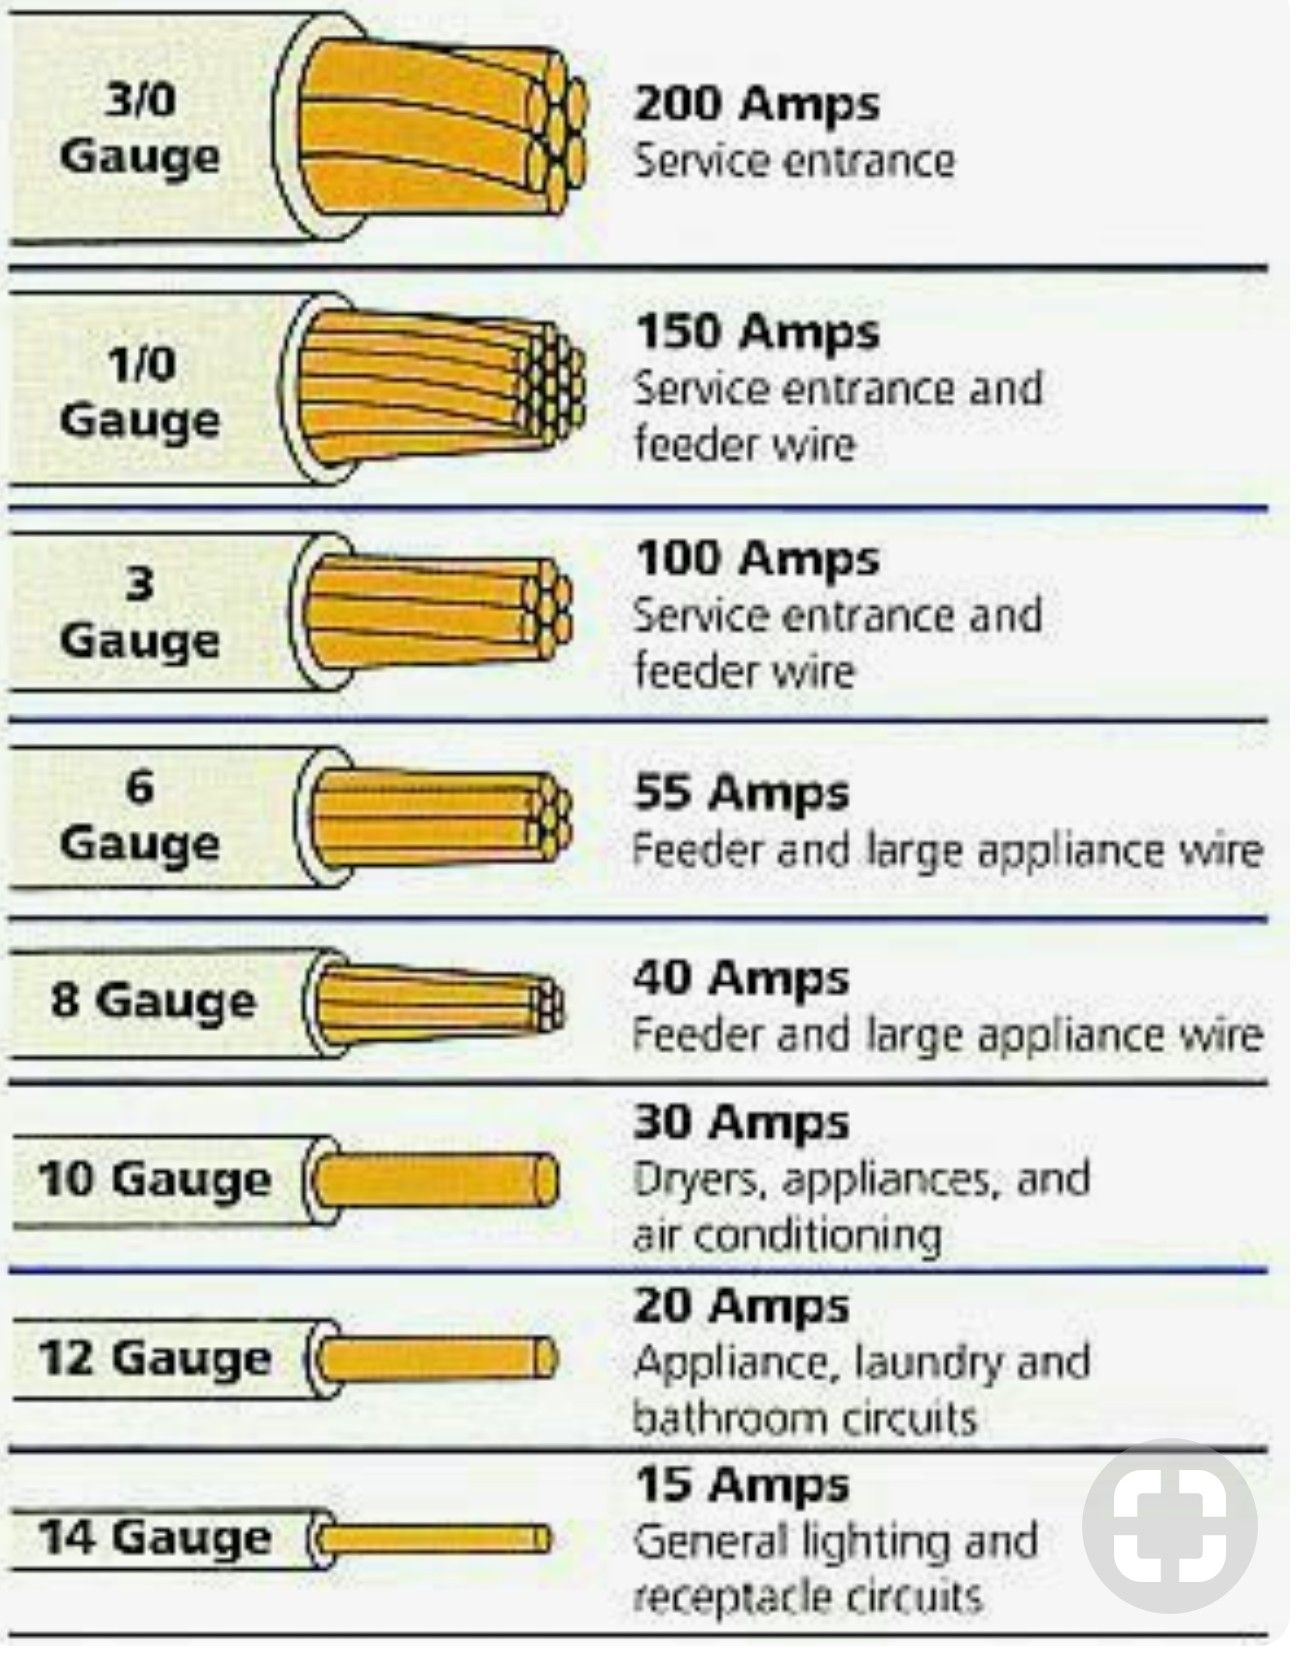 hight resolution of a handy wiring guide i wired my house almost exclusively with the 12 gauge wire for general receptacle and lighting circuits though